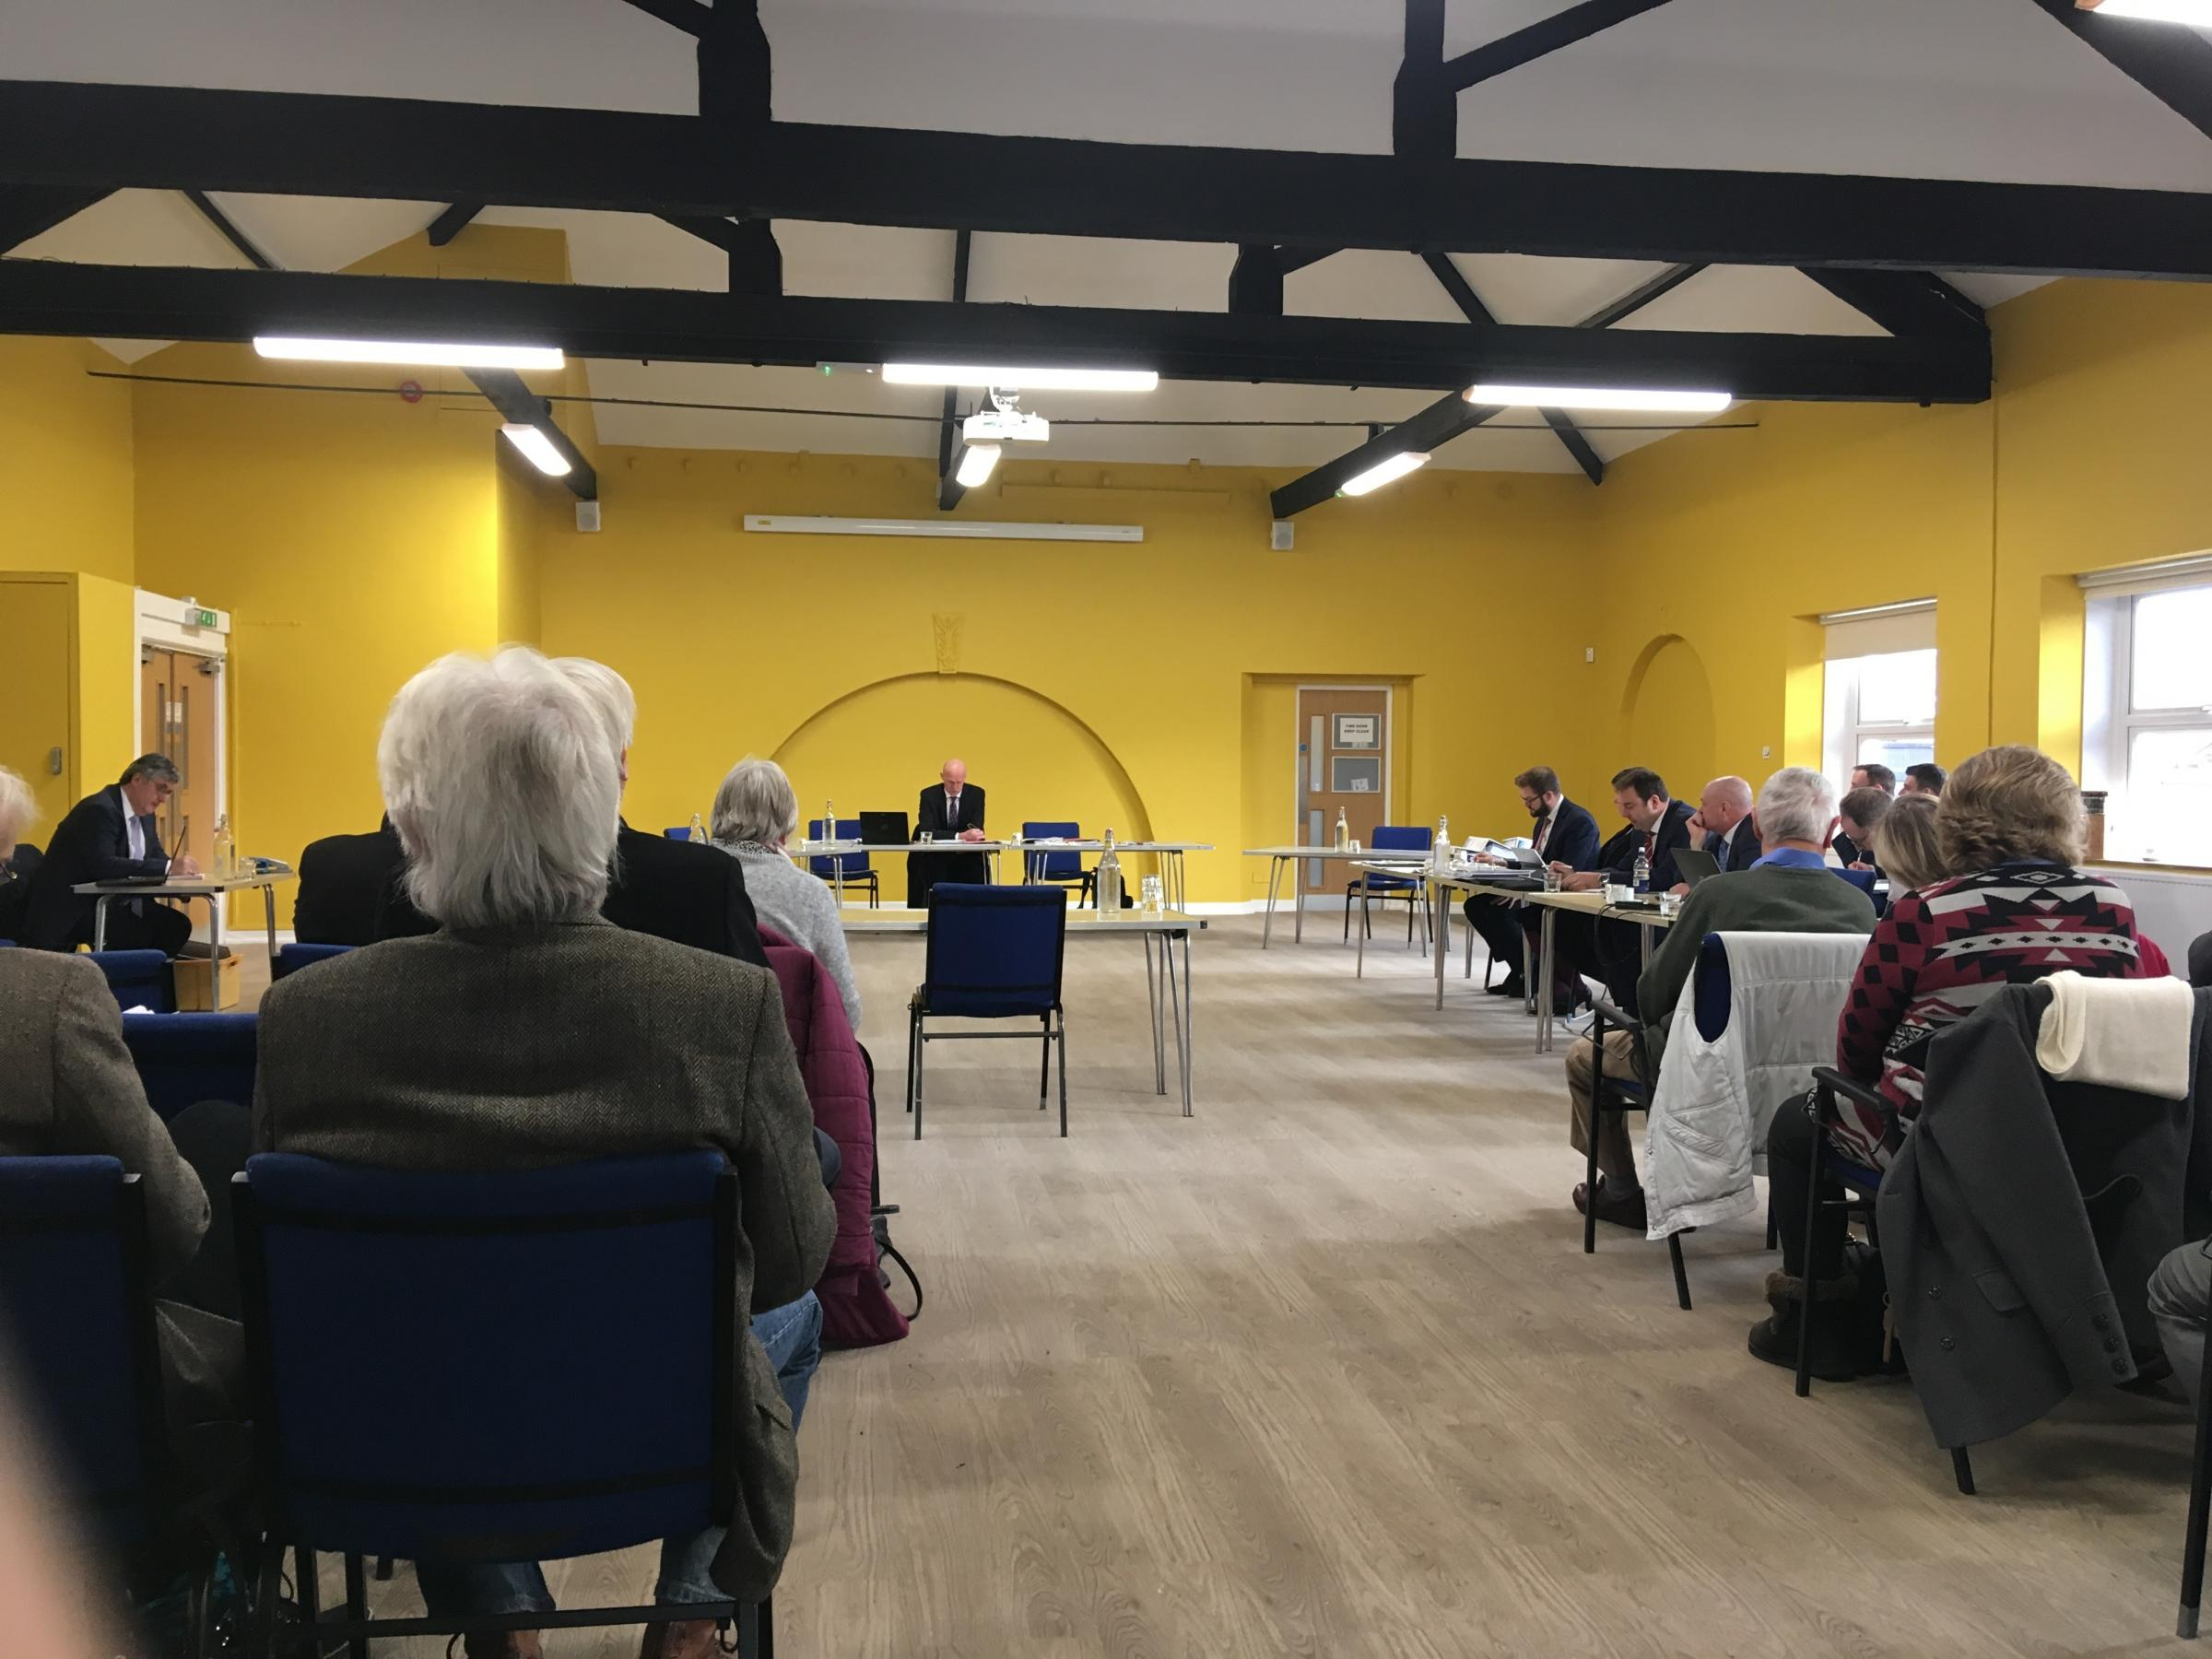 Opening Day Of The Langaller Lane Planning Inquiry In Taunton. CREDIT: Daniel Mumby.